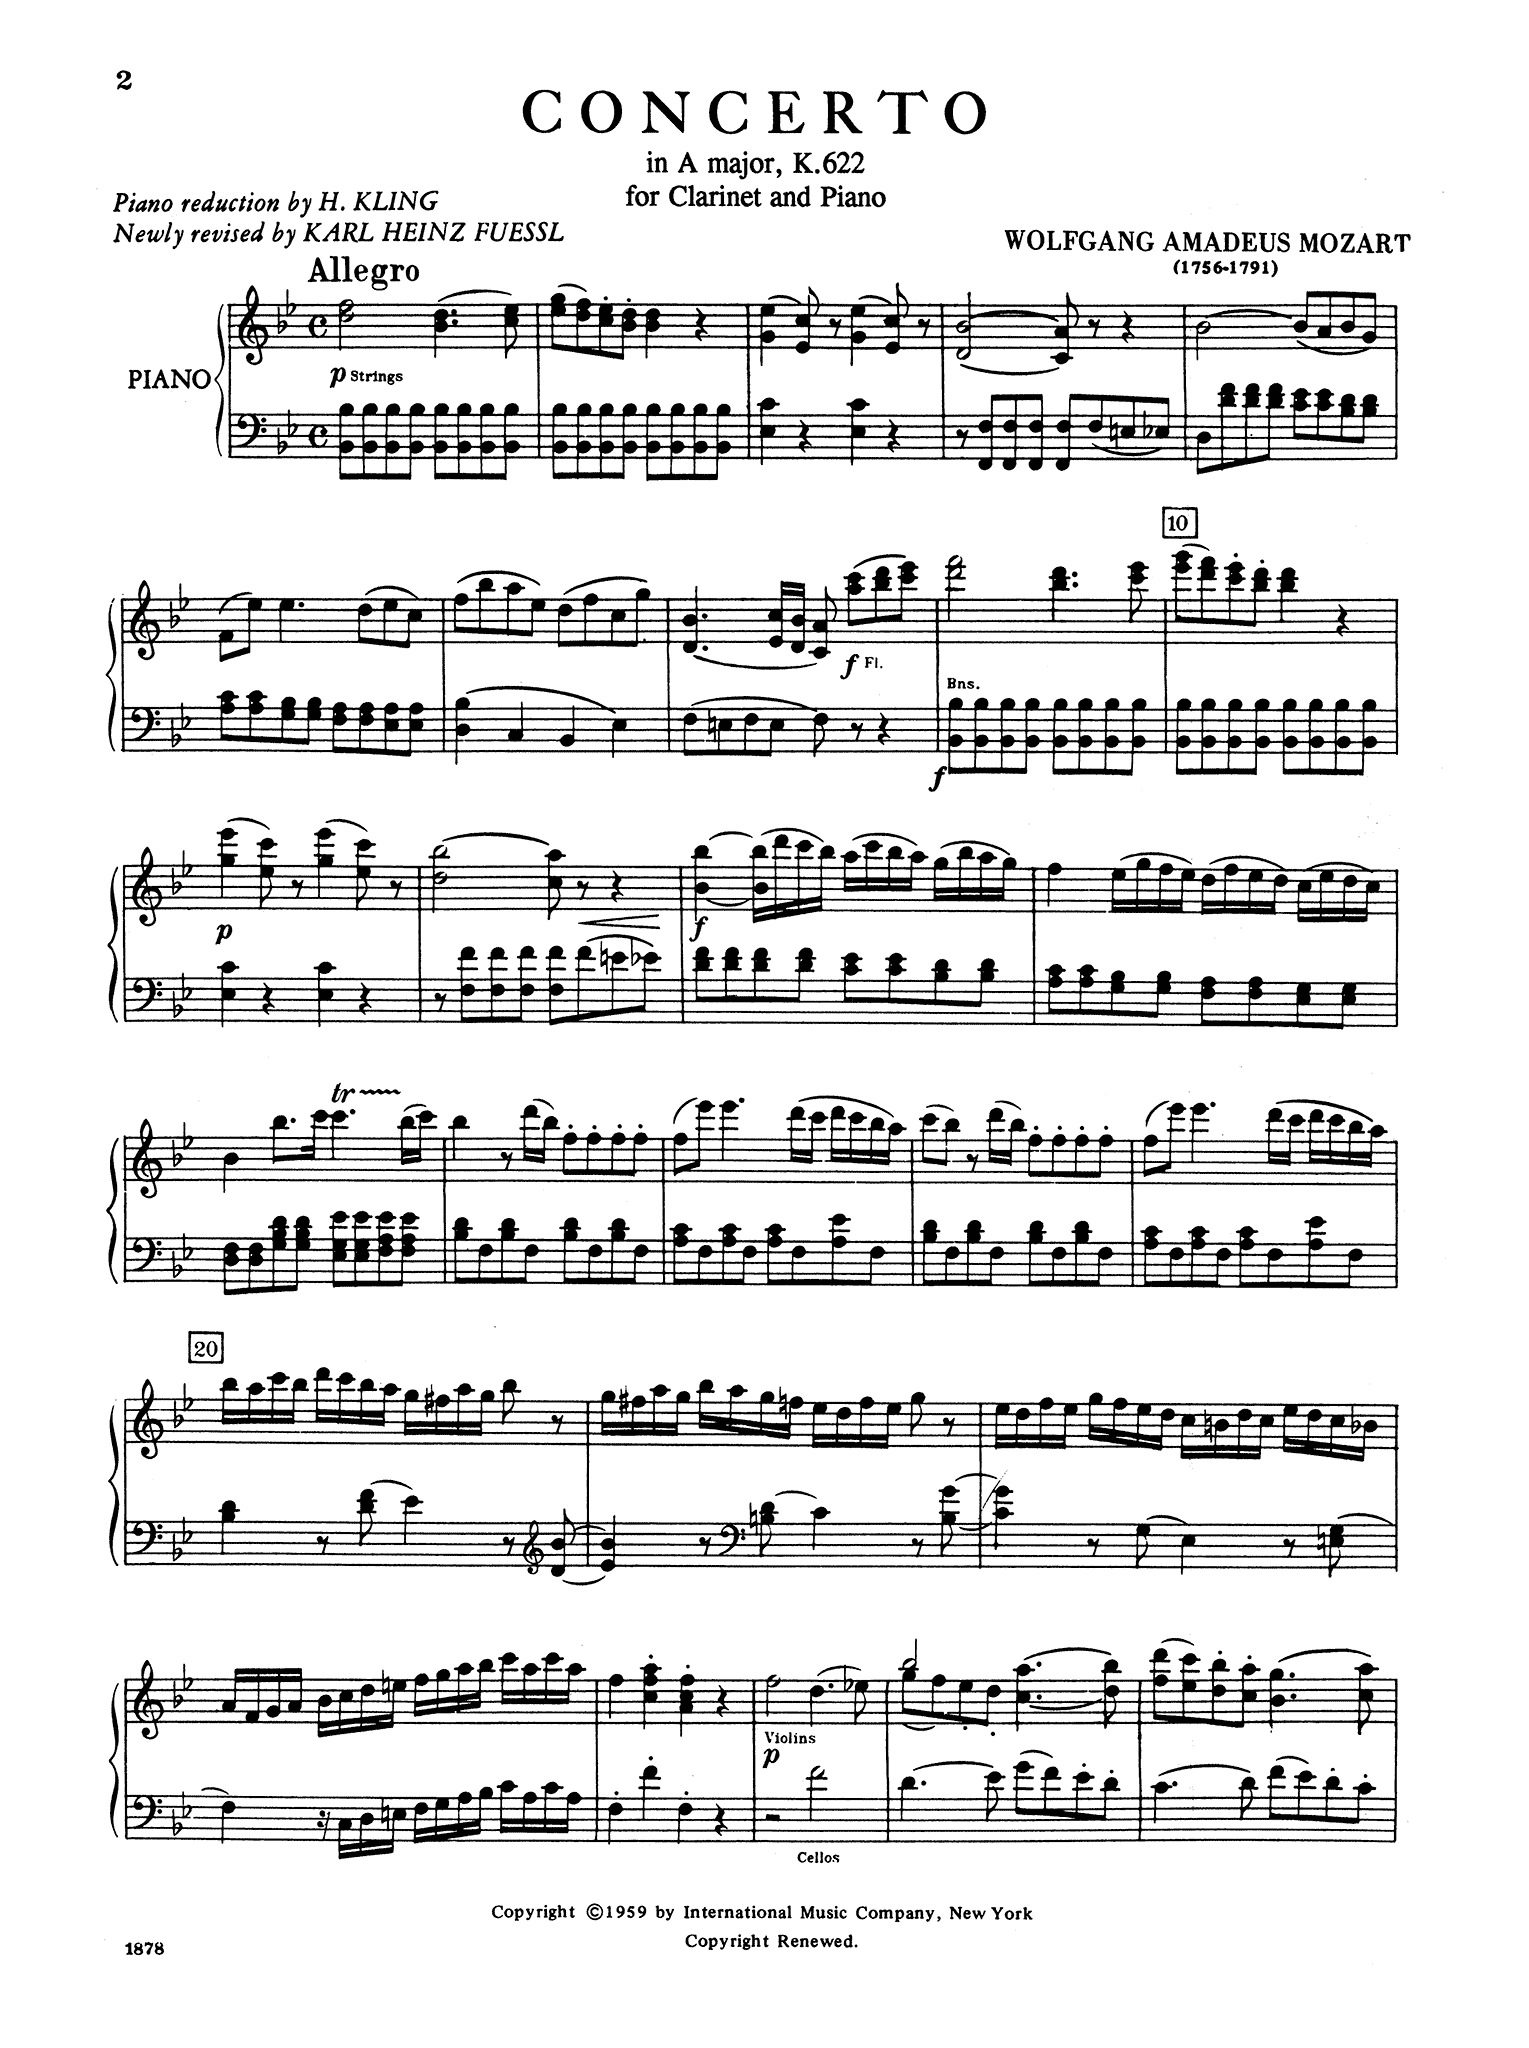 Clarinet Concerto in A Major, K. 622 (B-flat version) - Movement 1